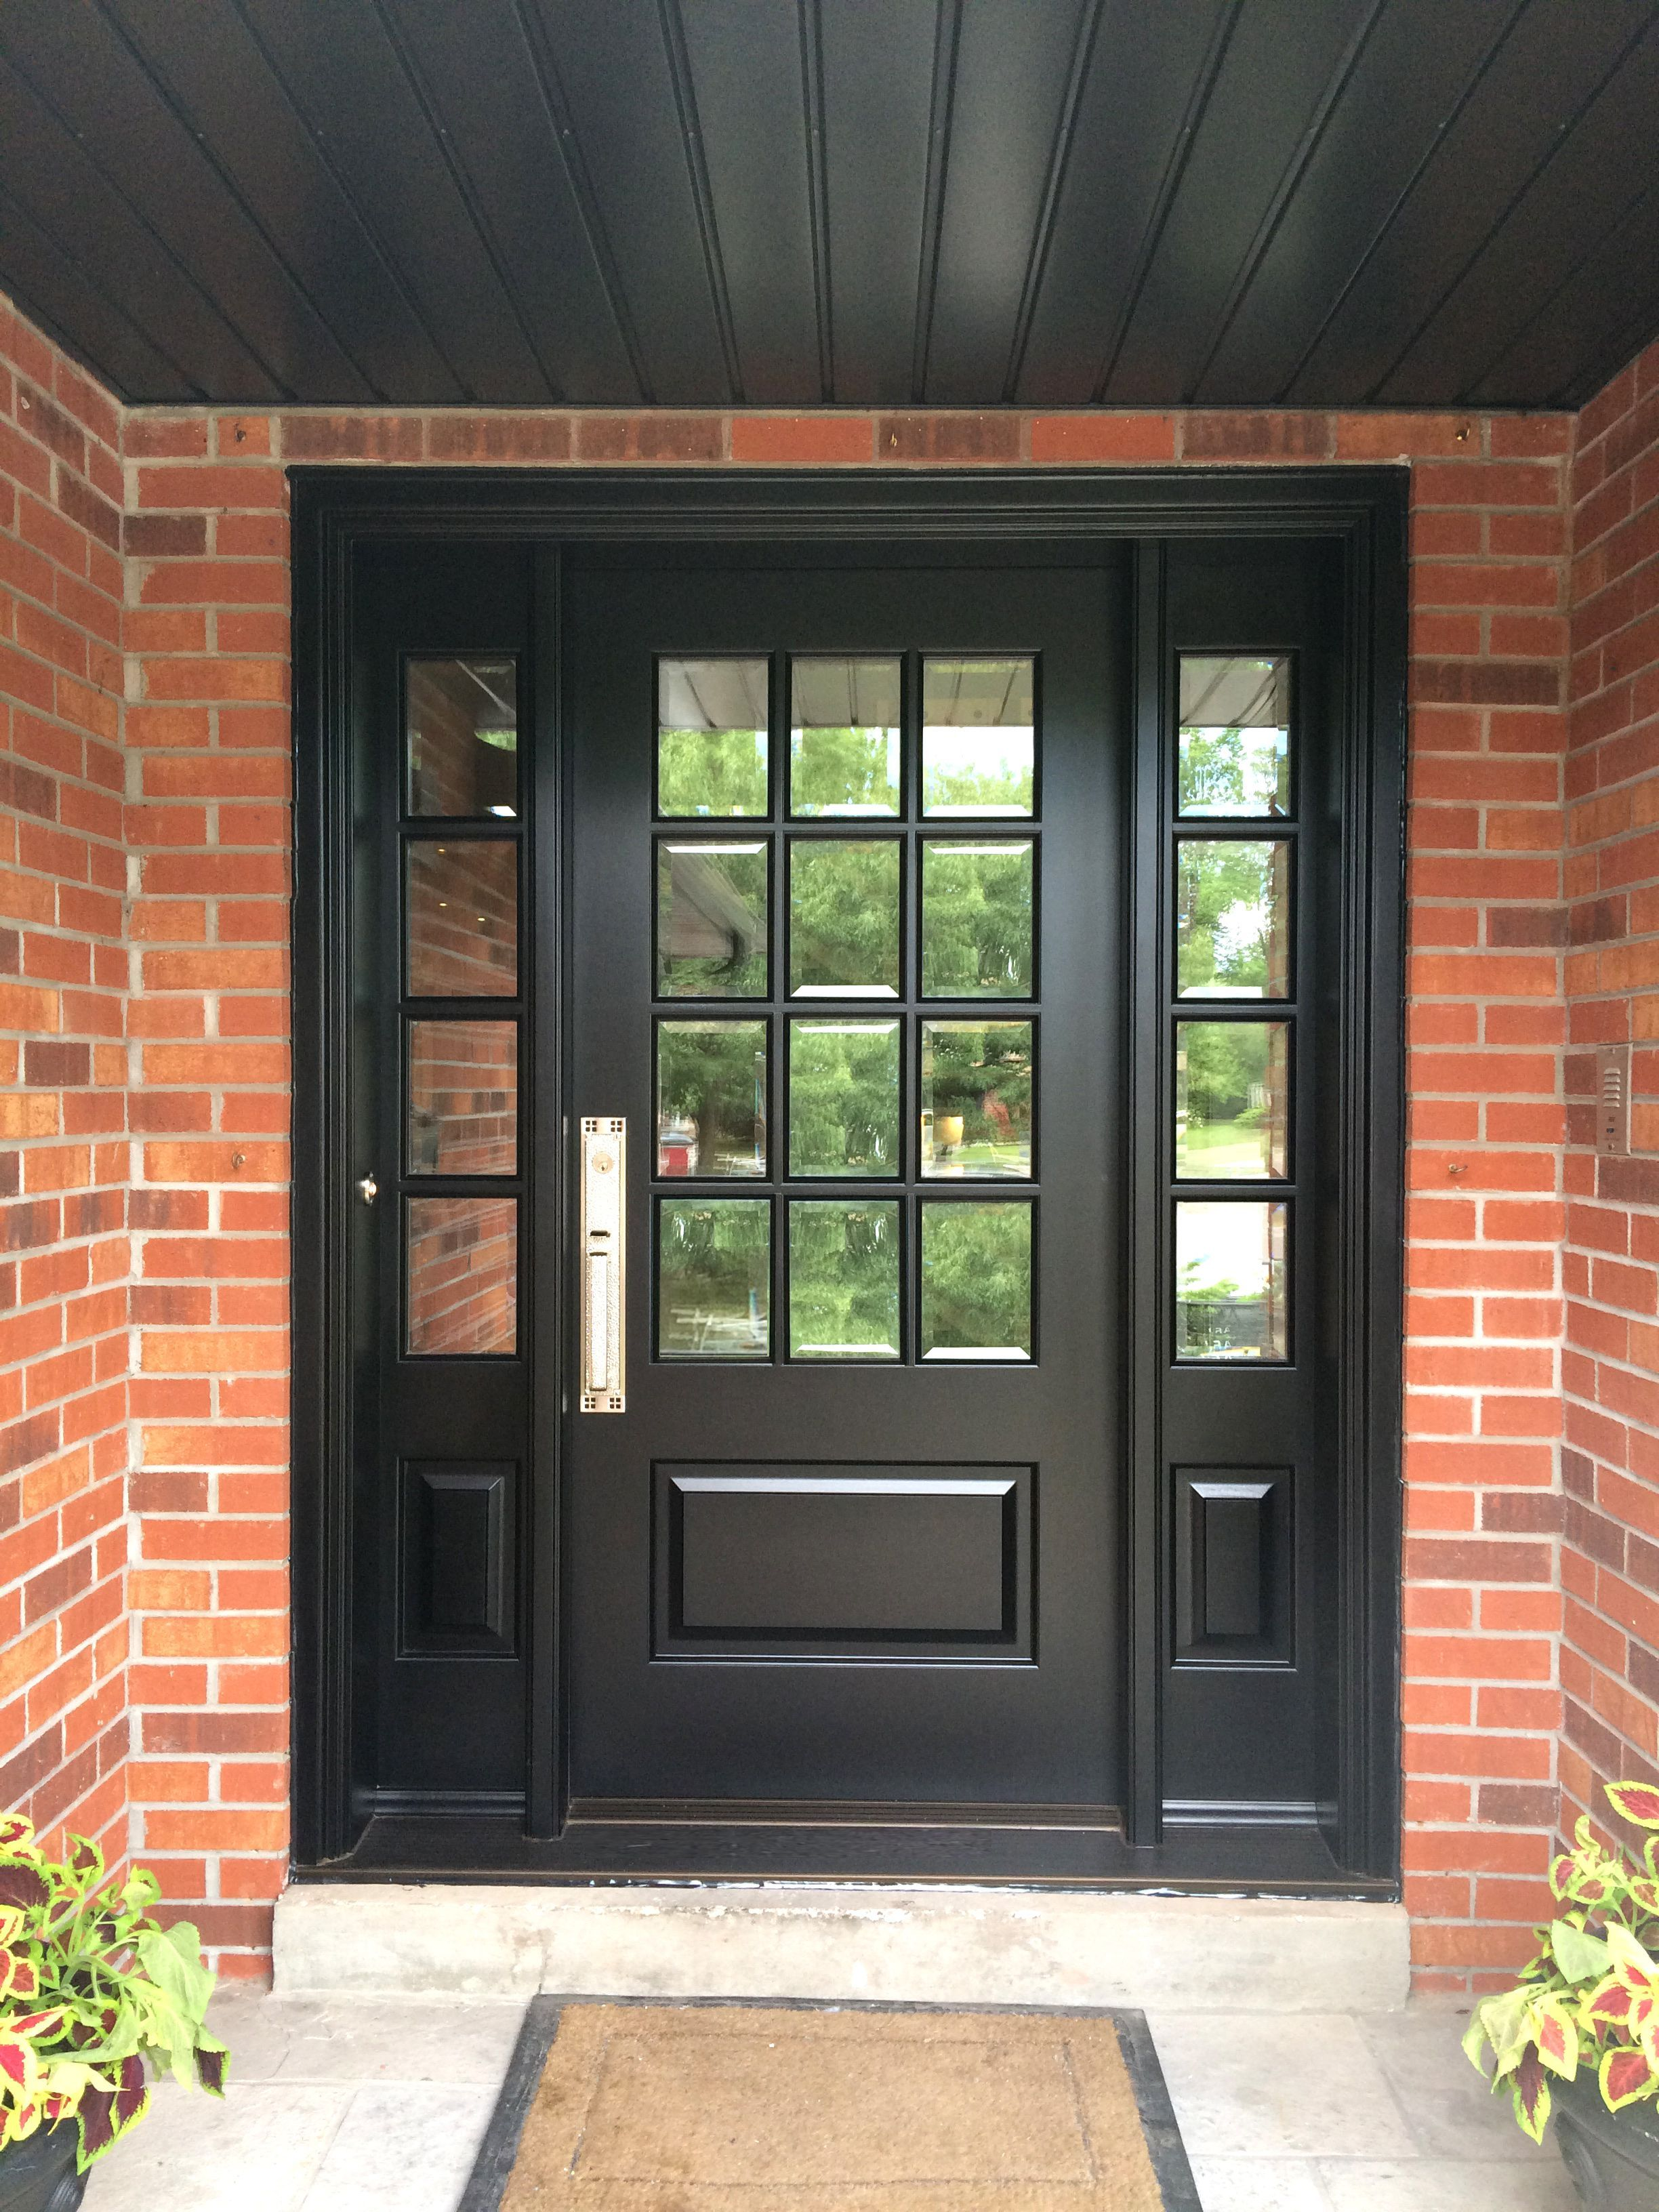 This Richly Black Stained Solid Mahogany Amberwood Custom Door With 12 Divided In 2020 Black Exterior Doors Brick Exterior House Exterior Doors